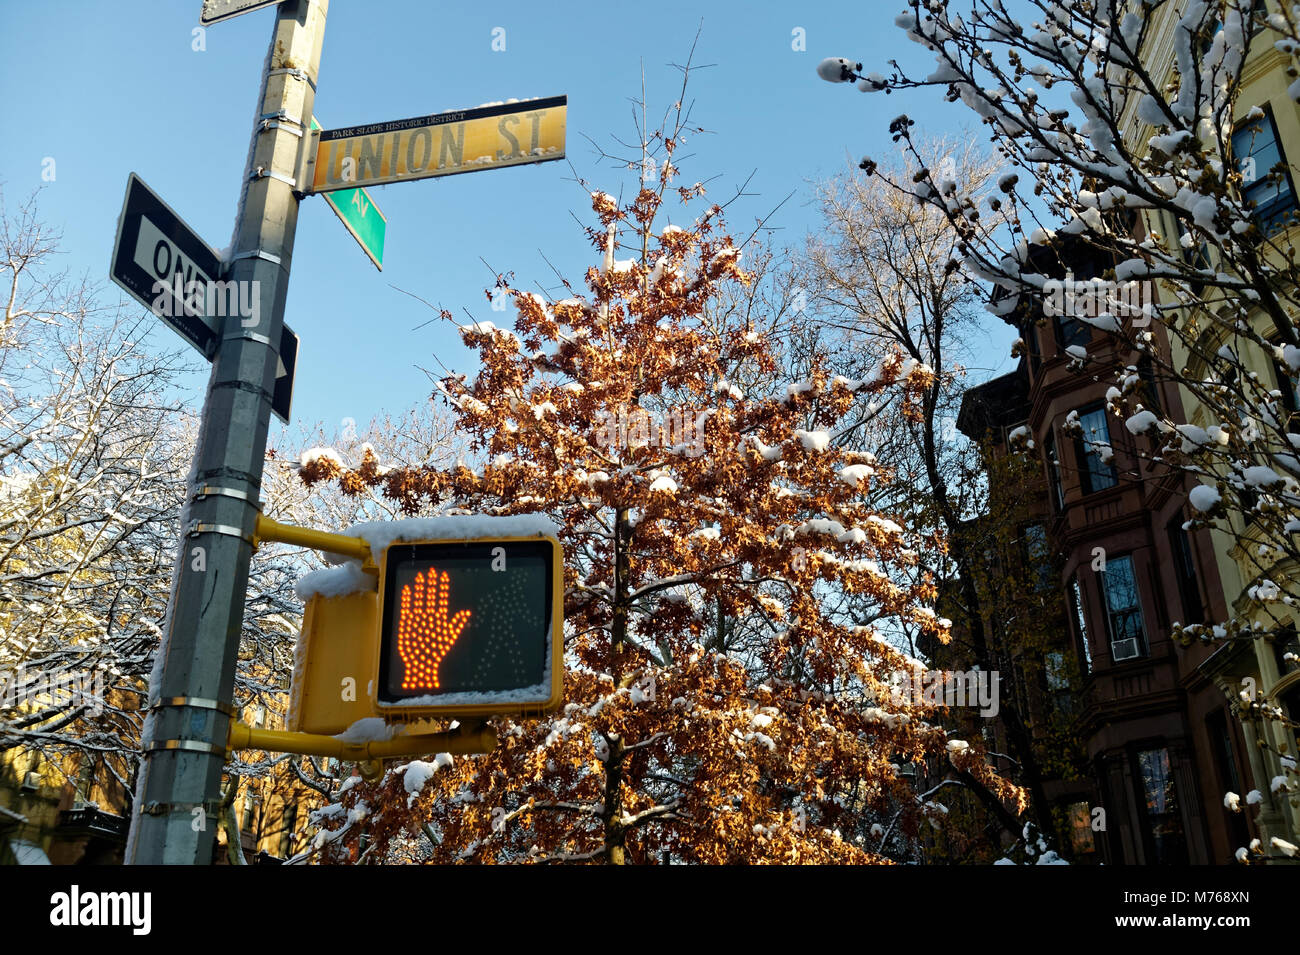 Crossing and street sign in Union Street, Park Slope Brooklyn. - Stock Image